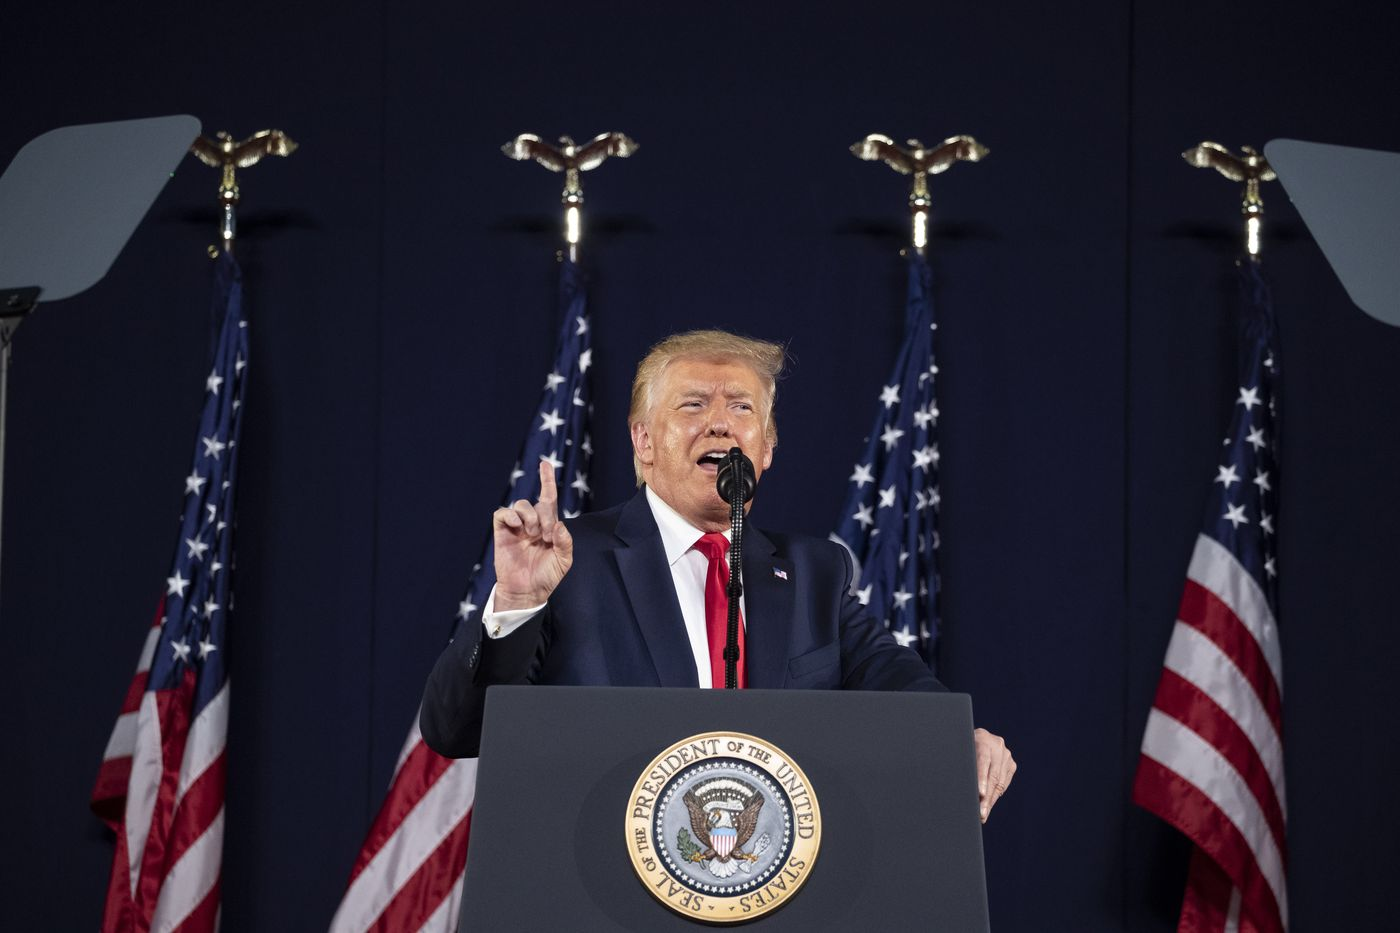 As much of U.S. dials back July 4 plans, Trump goes big